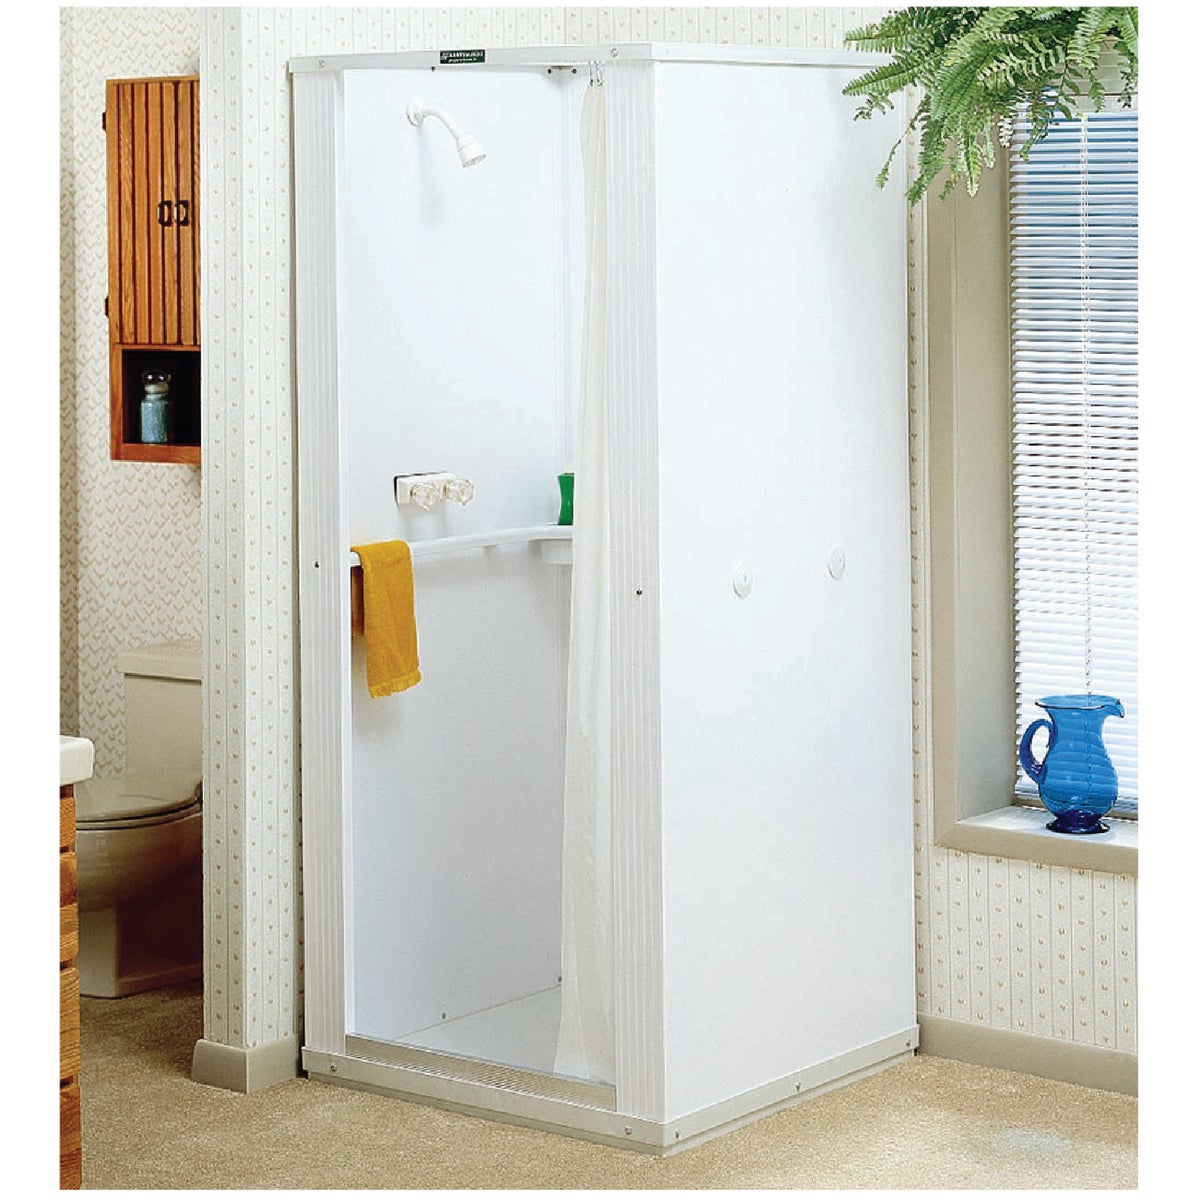 "32"" STD BAS SHOWER STALL - 80 by E L Mustee"